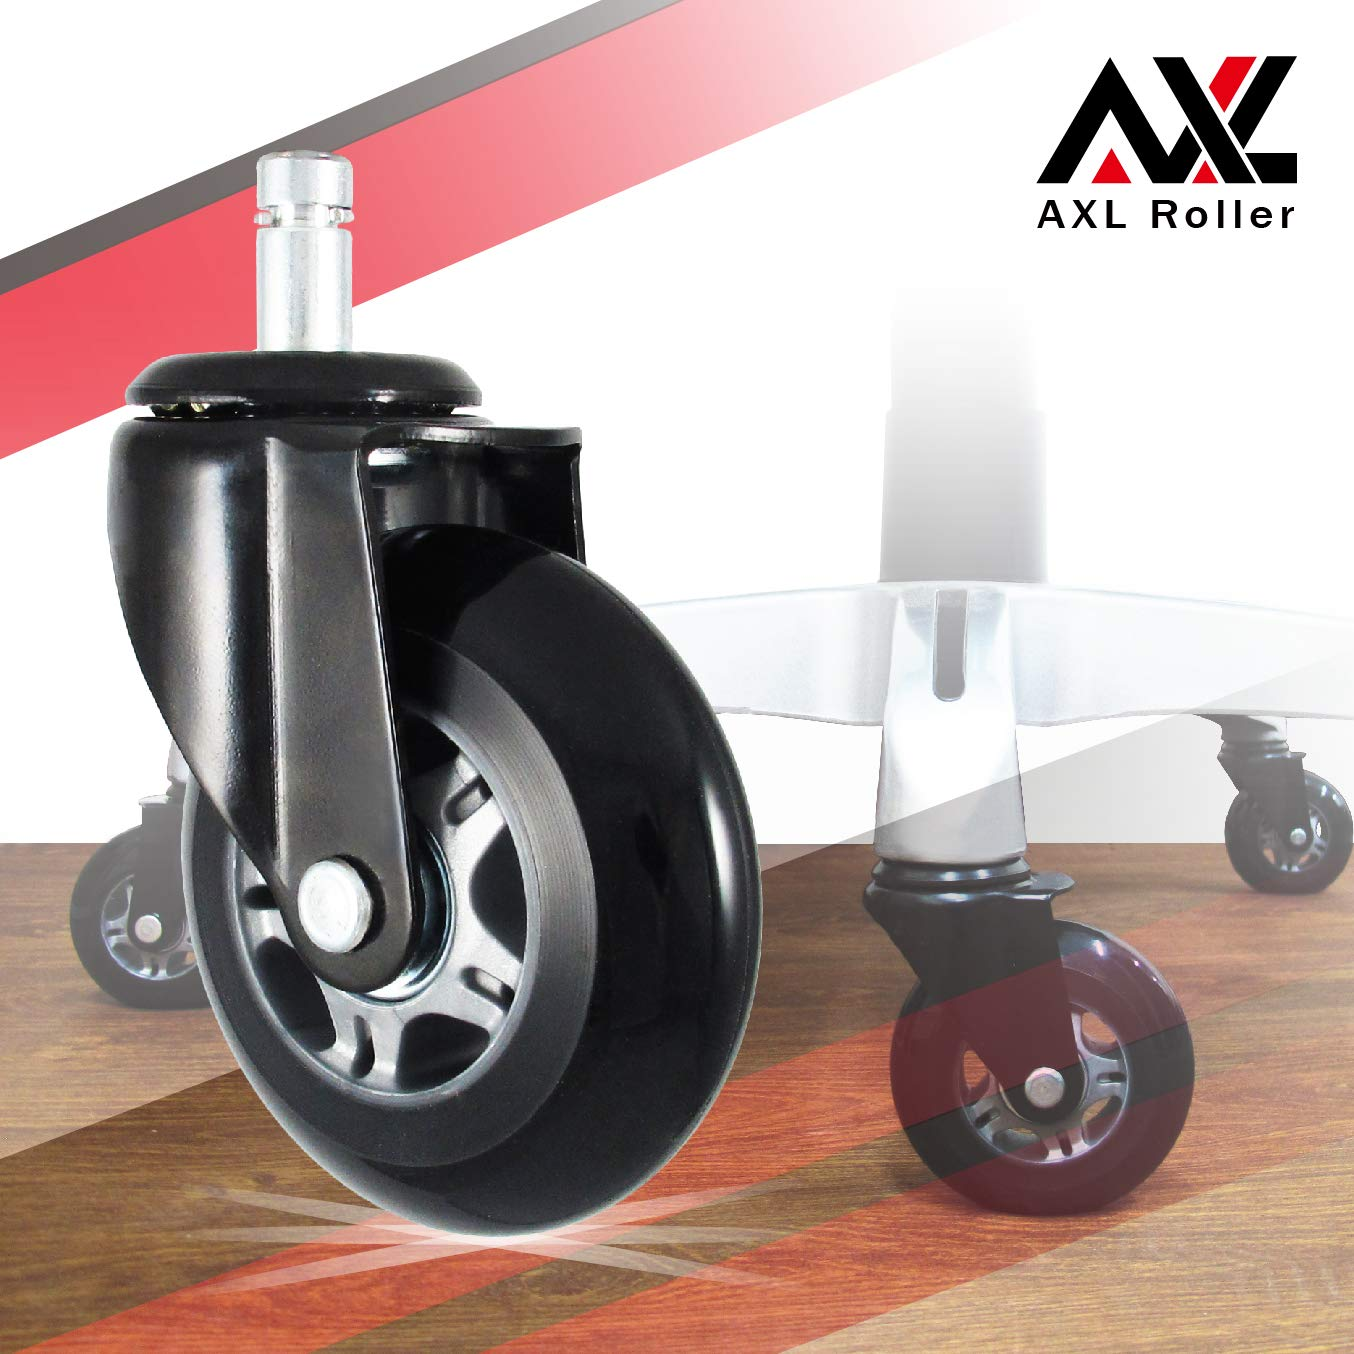 AXL 3 Inch Office Chair Caster Extra Heavy Duty Skate Roller PU, Big Monster Bracket, Safe for All Floor Hardwood, Noise-Free, Perfect Replacement for Desk Chair Mat, Universal Fit (Grey/Black)